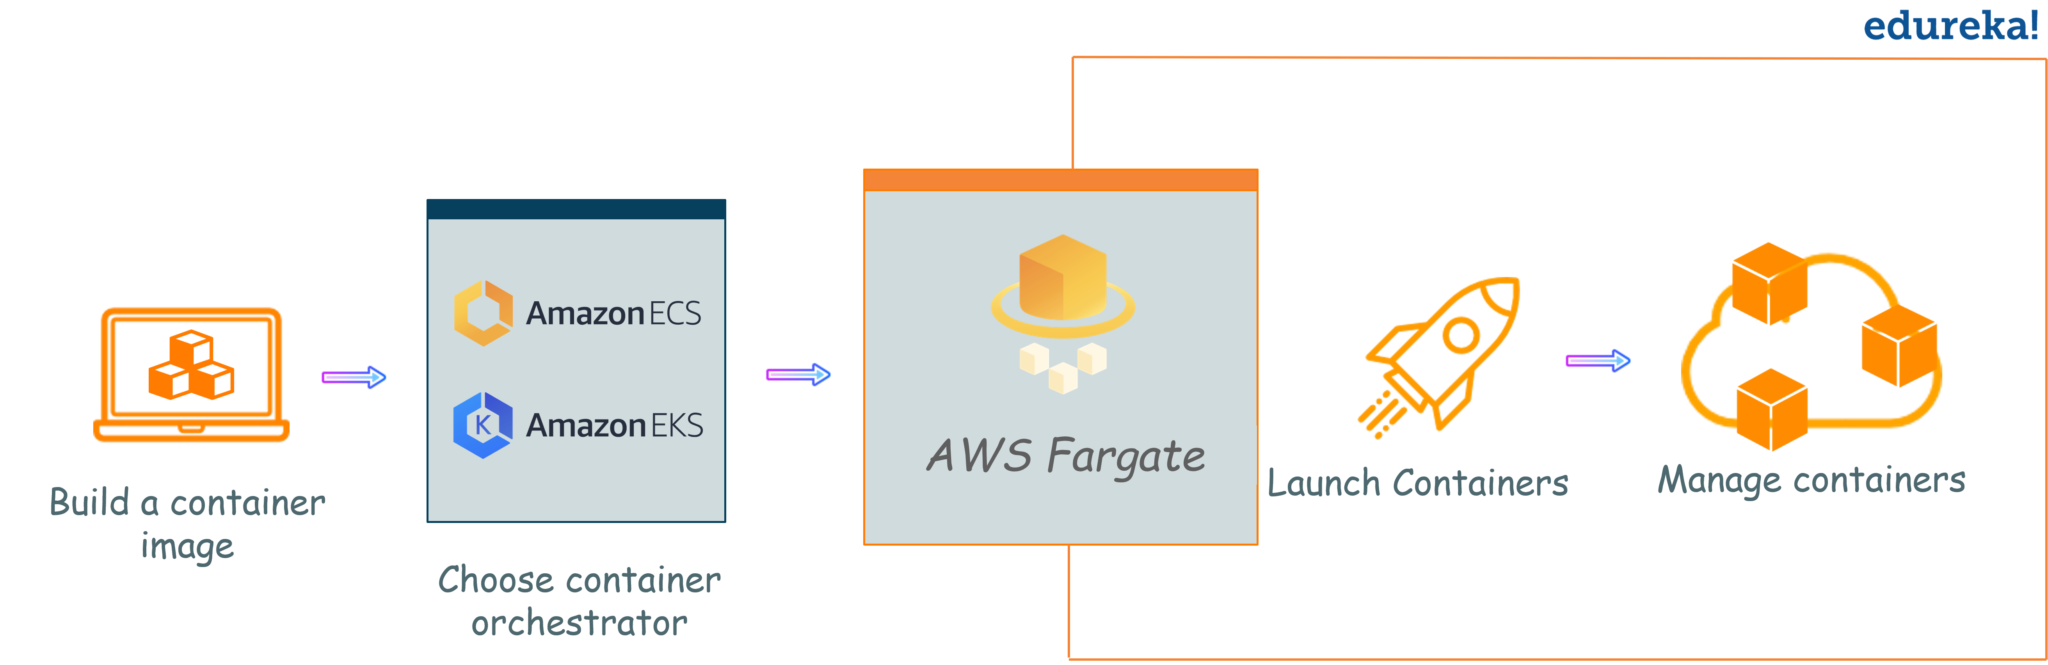 AWS Fargate: Introduction to AWS Elastic Container Service